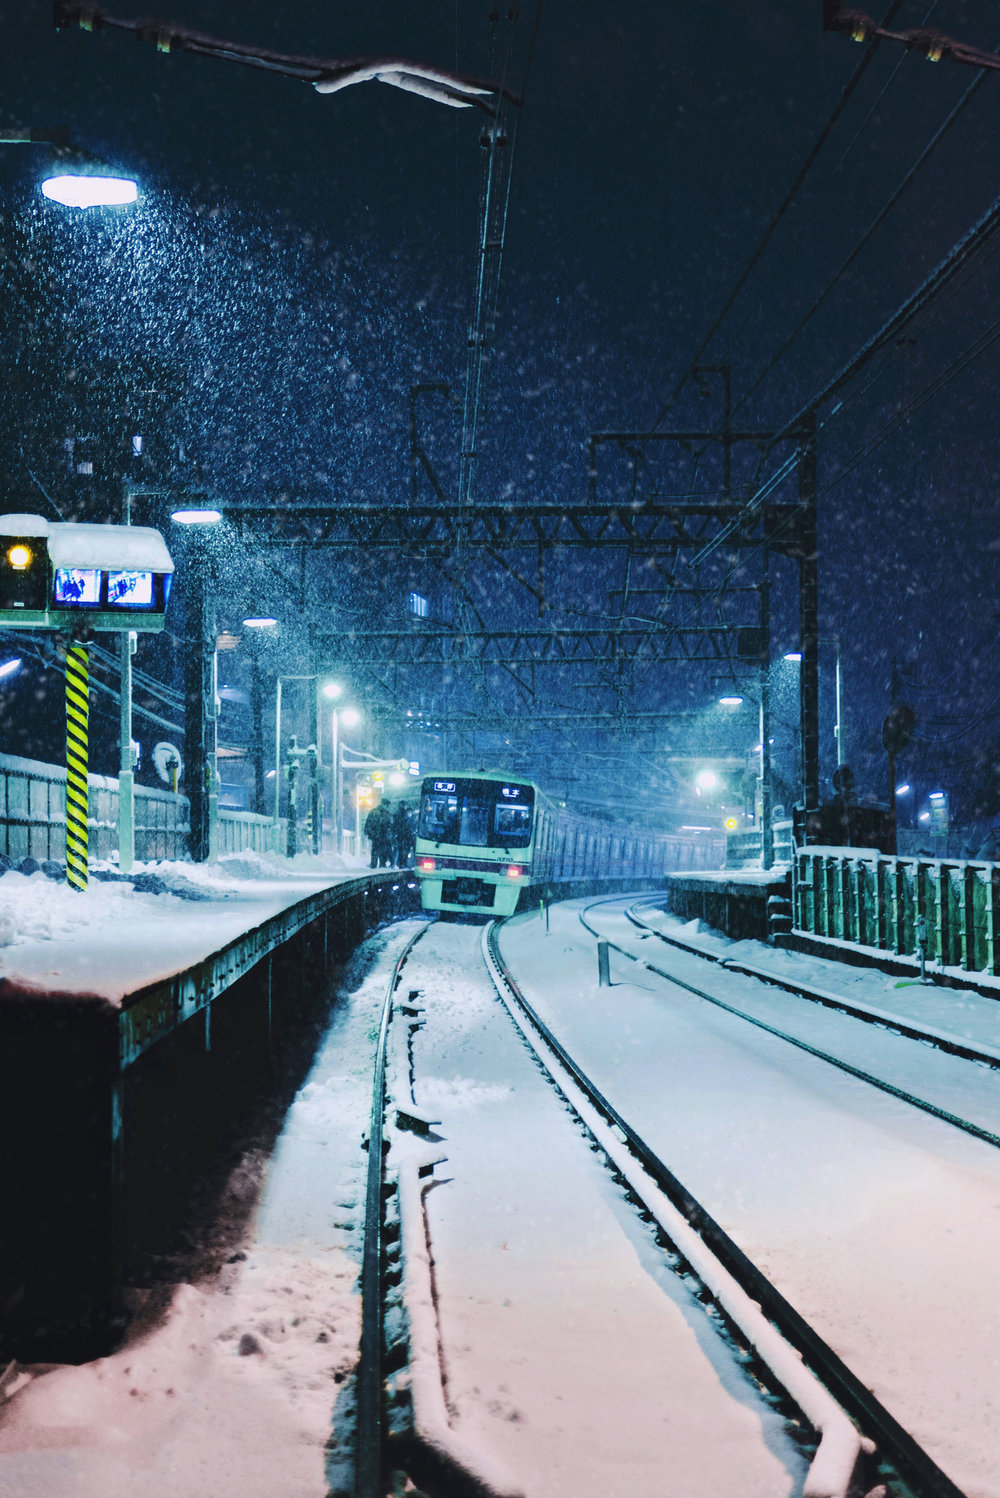 A Keio train headed for Hashimoto pulls into Shimotakaido station. [  BUY PRINT  ]